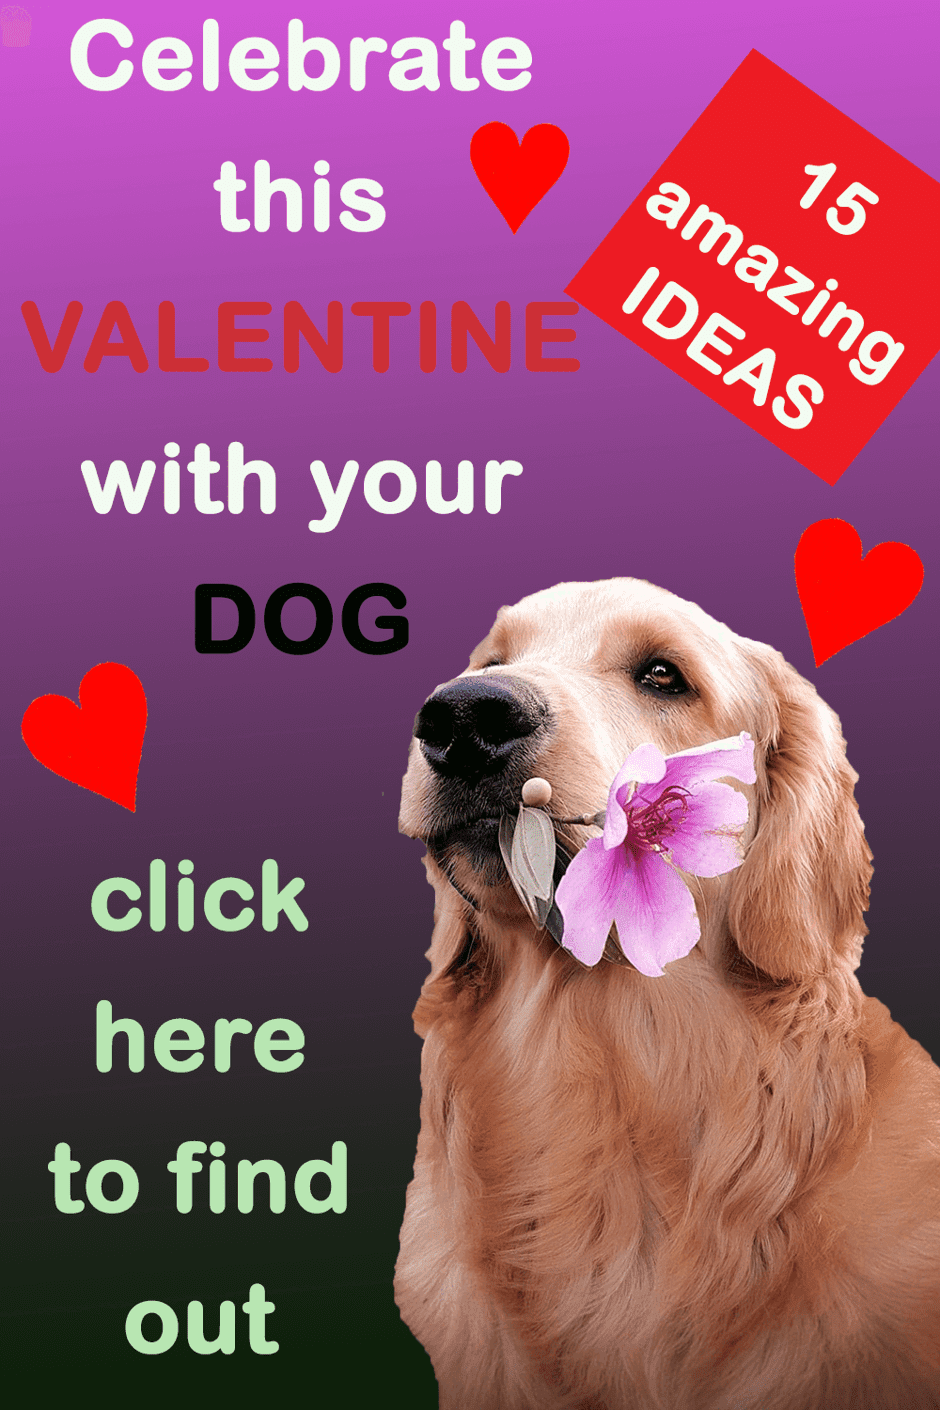 Spend this Valentine's Day with your pooch and make it super special for him/her. Click on the image to find 15 amazing things you can do this Valentine's Day with your fur kid and make the day spectacular and memorable. Valentine gift for dogs | Valentine day gifts | Valentine day for dogs | Valentine day celebration with dog | Best valentine day gift ideas for dogs.